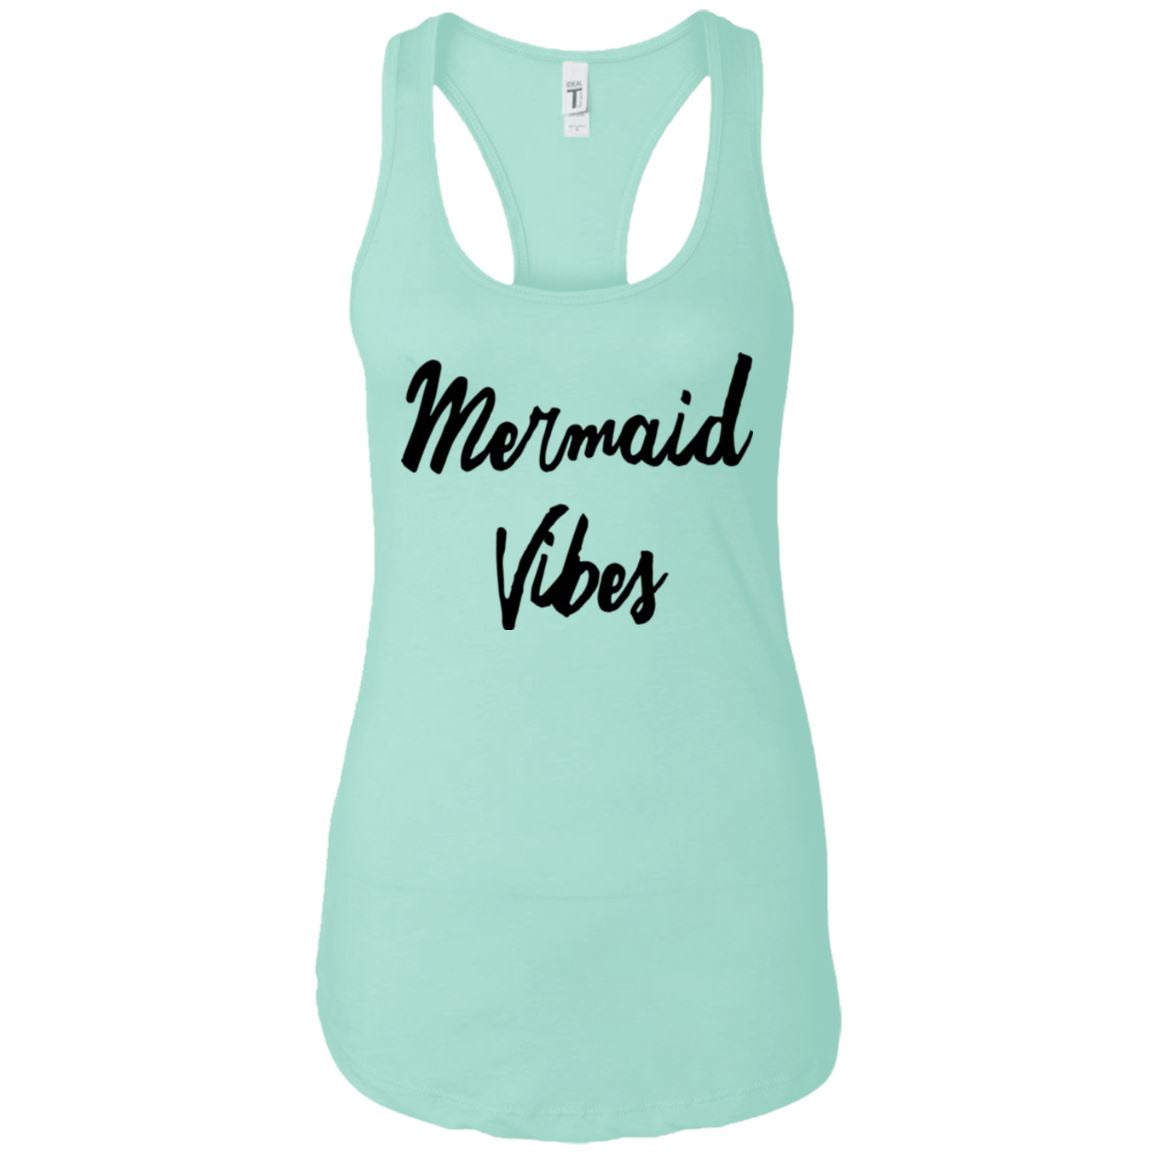 Mermaid Vibes Level Ladies Racerback Tank Mermaid Apparel Mint X-Small